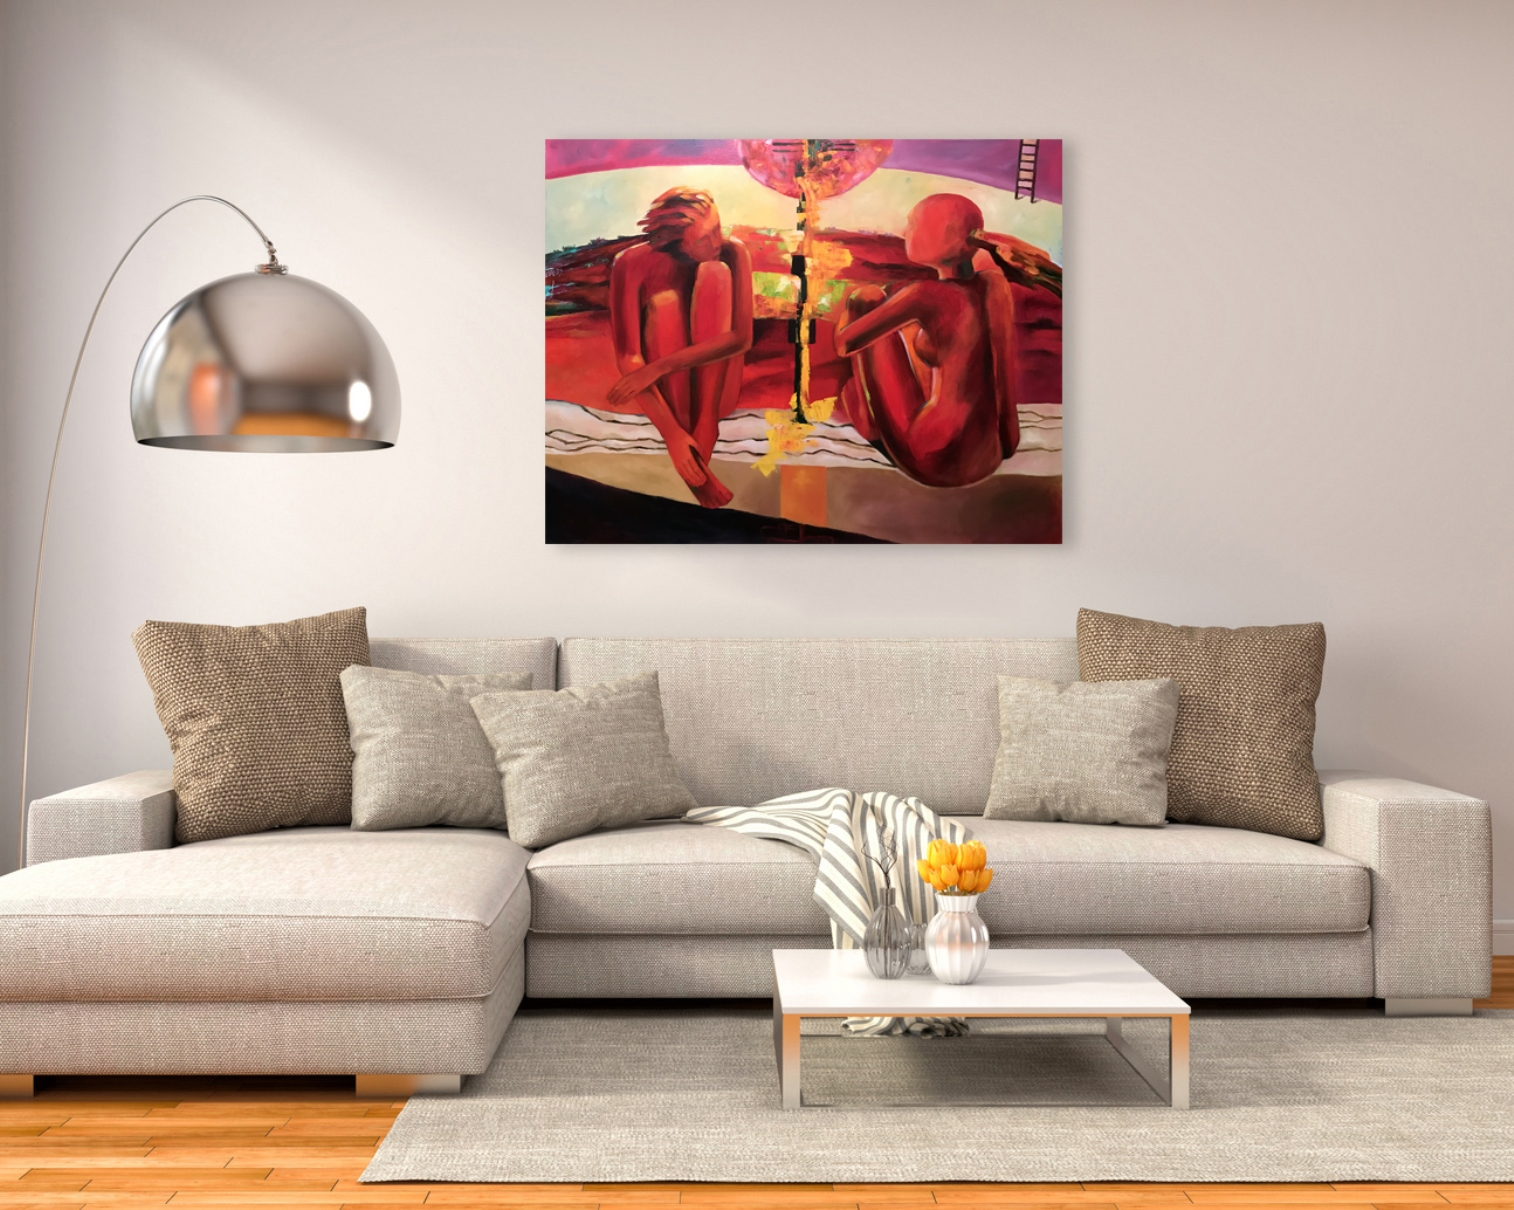 The expectation of a New Life - Art print on canvas